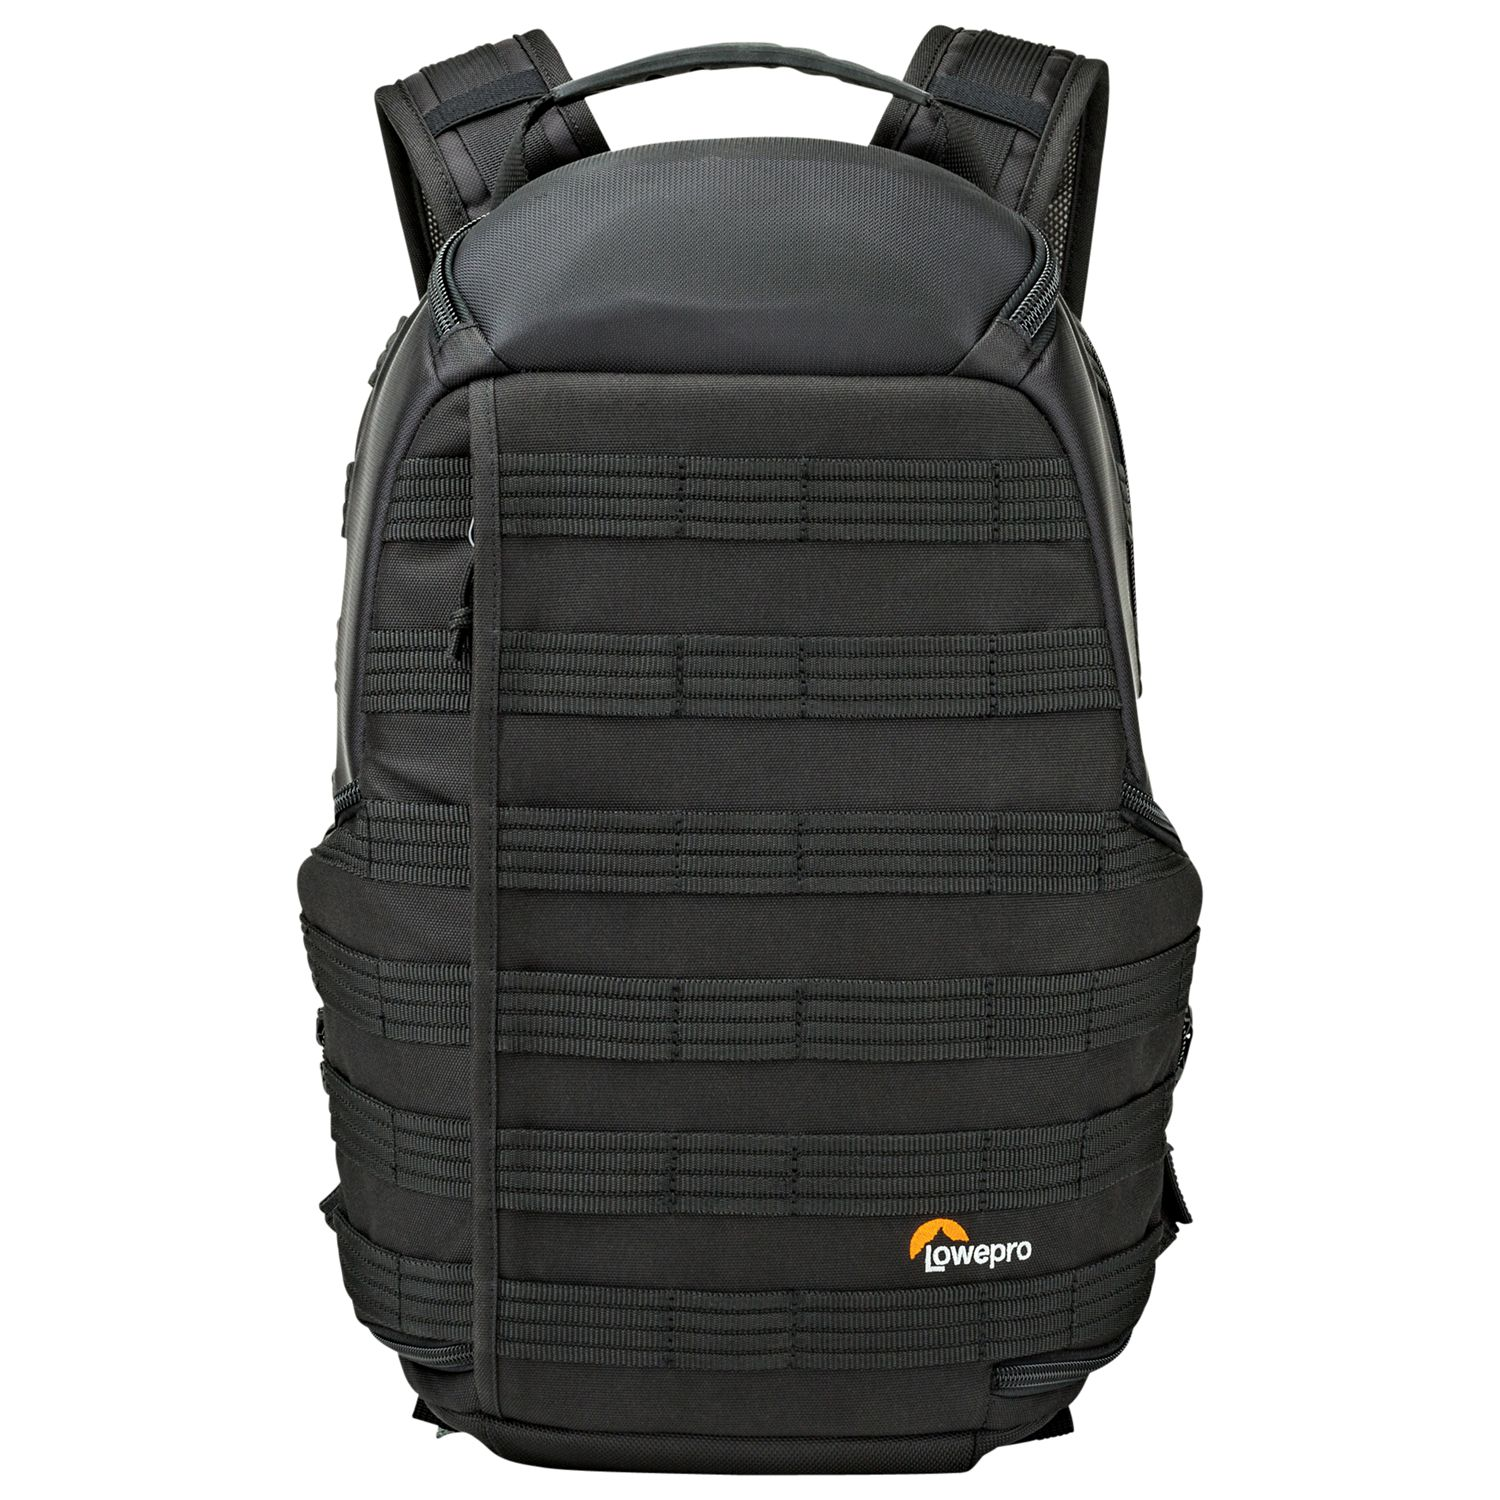 Lowepro Lowepro ProTactic 250 AW Camera Backpack, Black